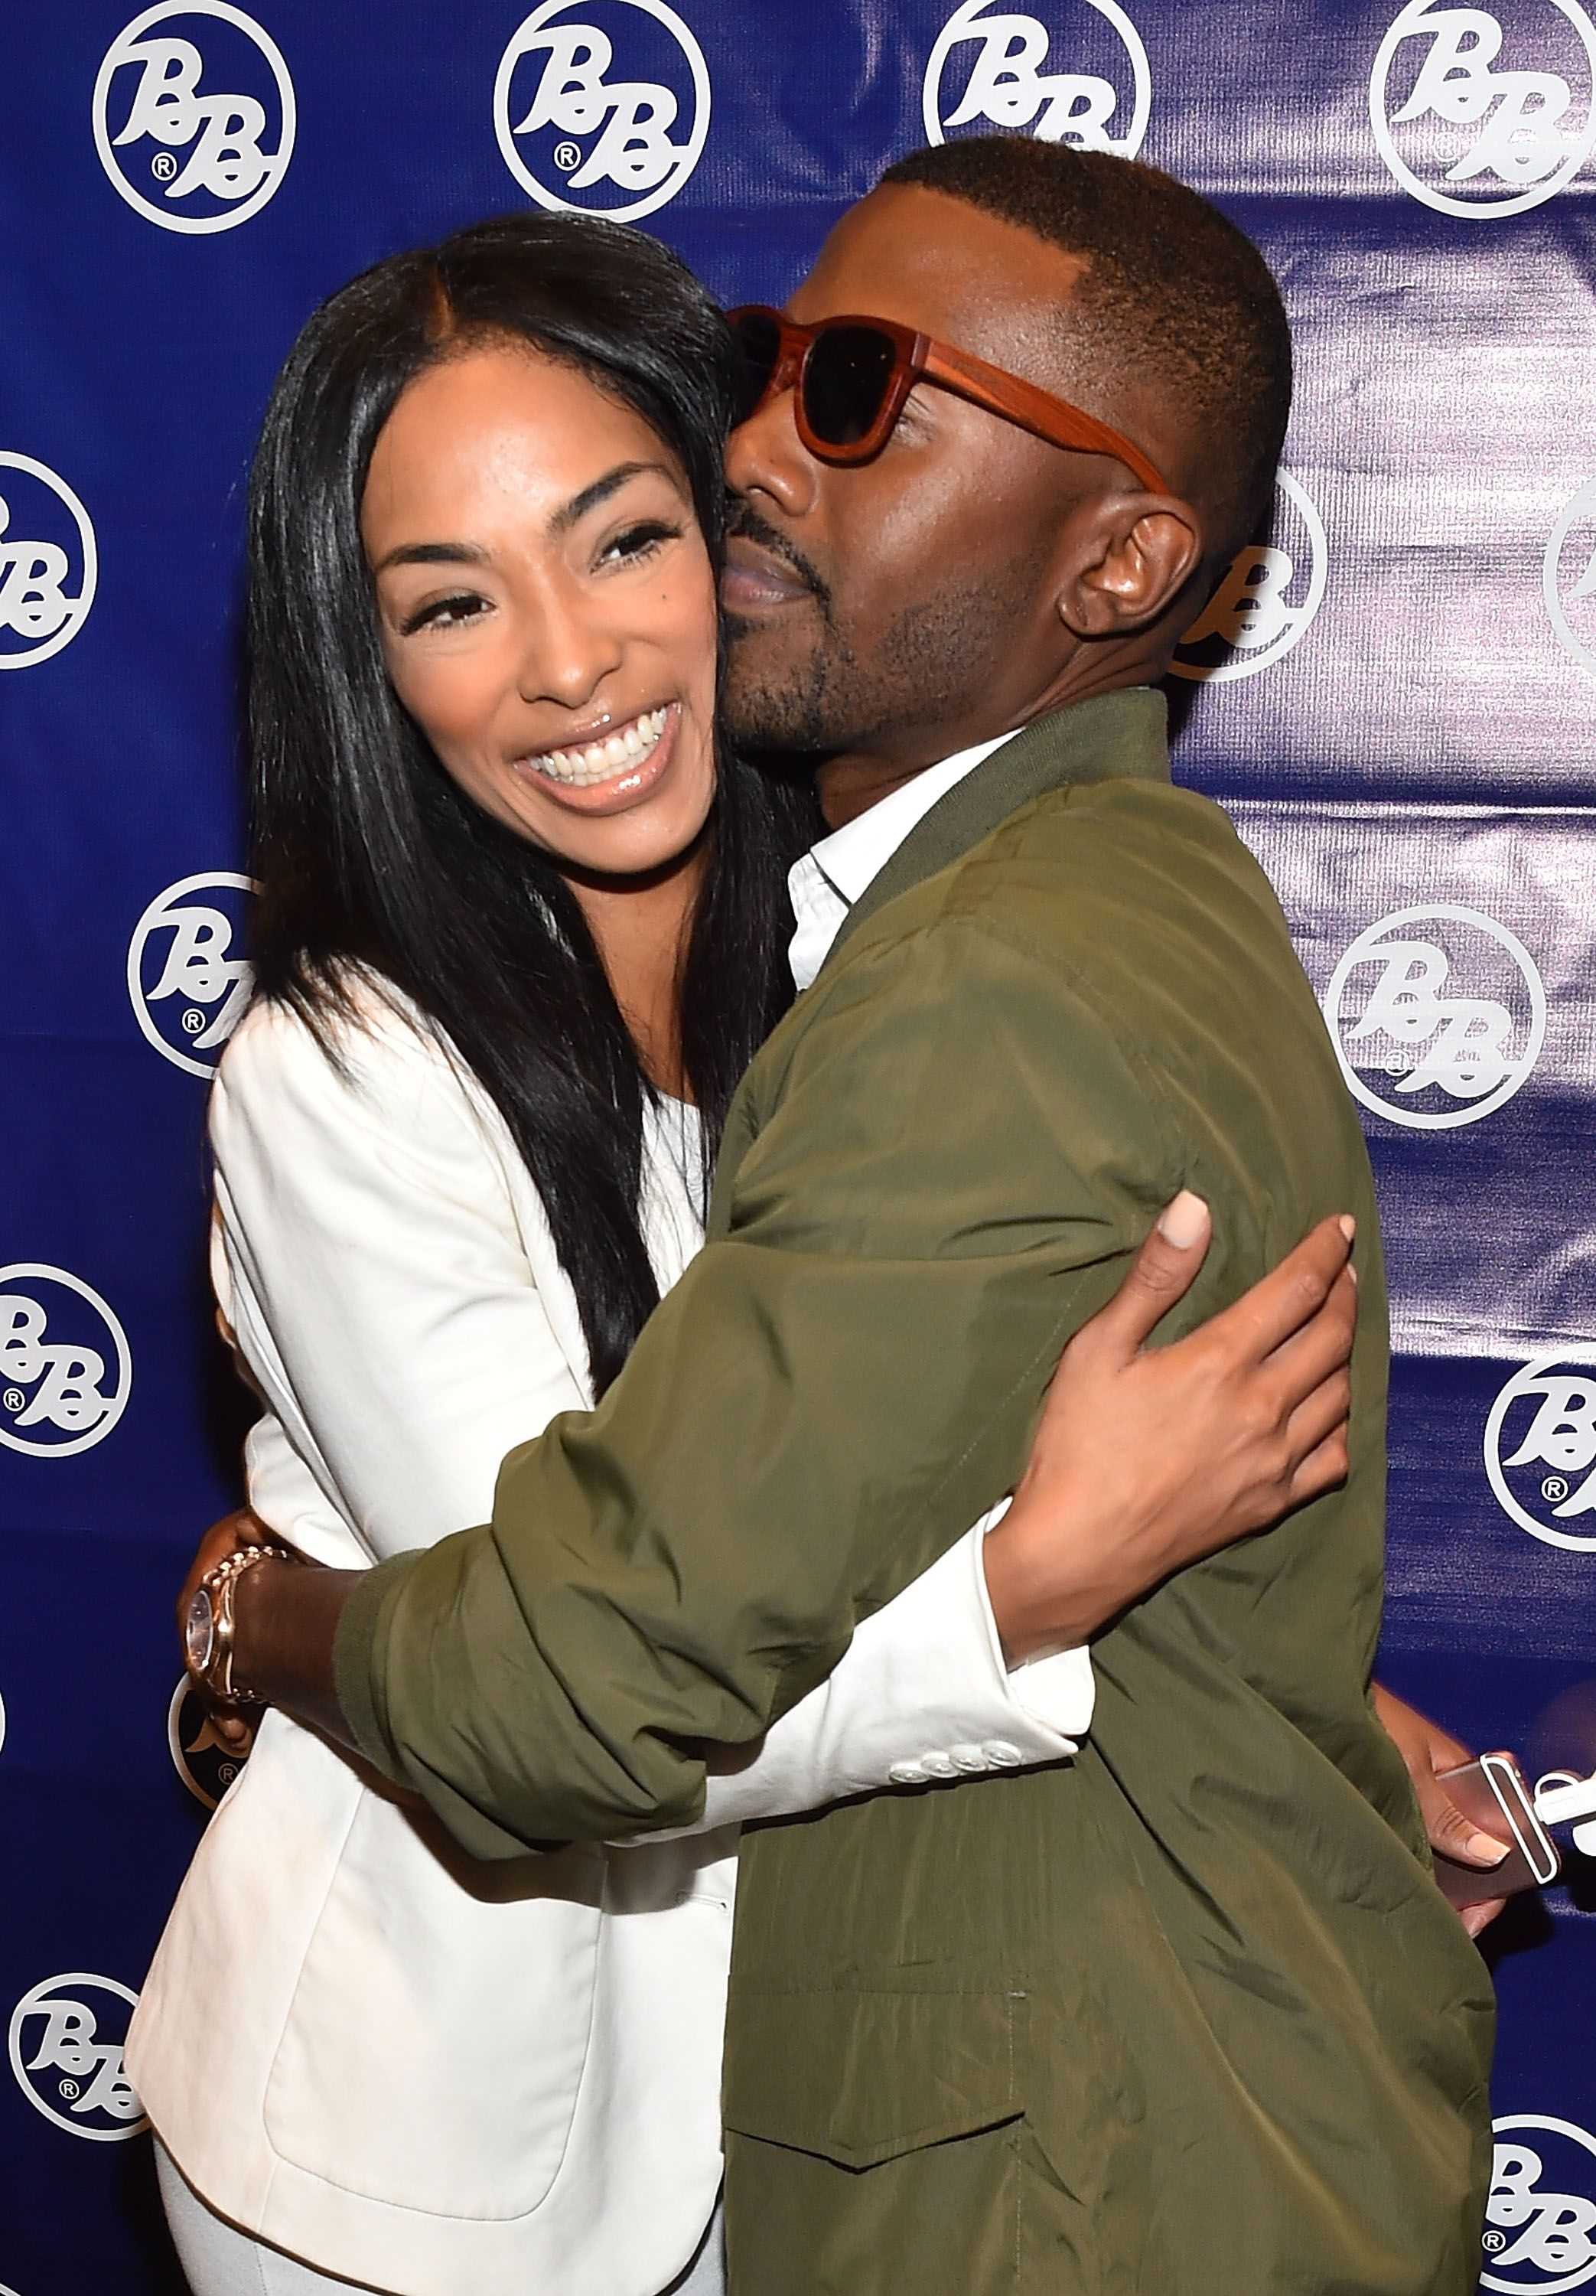 Princess Love and Ray J during the Bronner Brothers International Beauty Show at Georgia World Congress Center on August 21, 2016 in Atlanta, Georgia.   Source: Getty Images